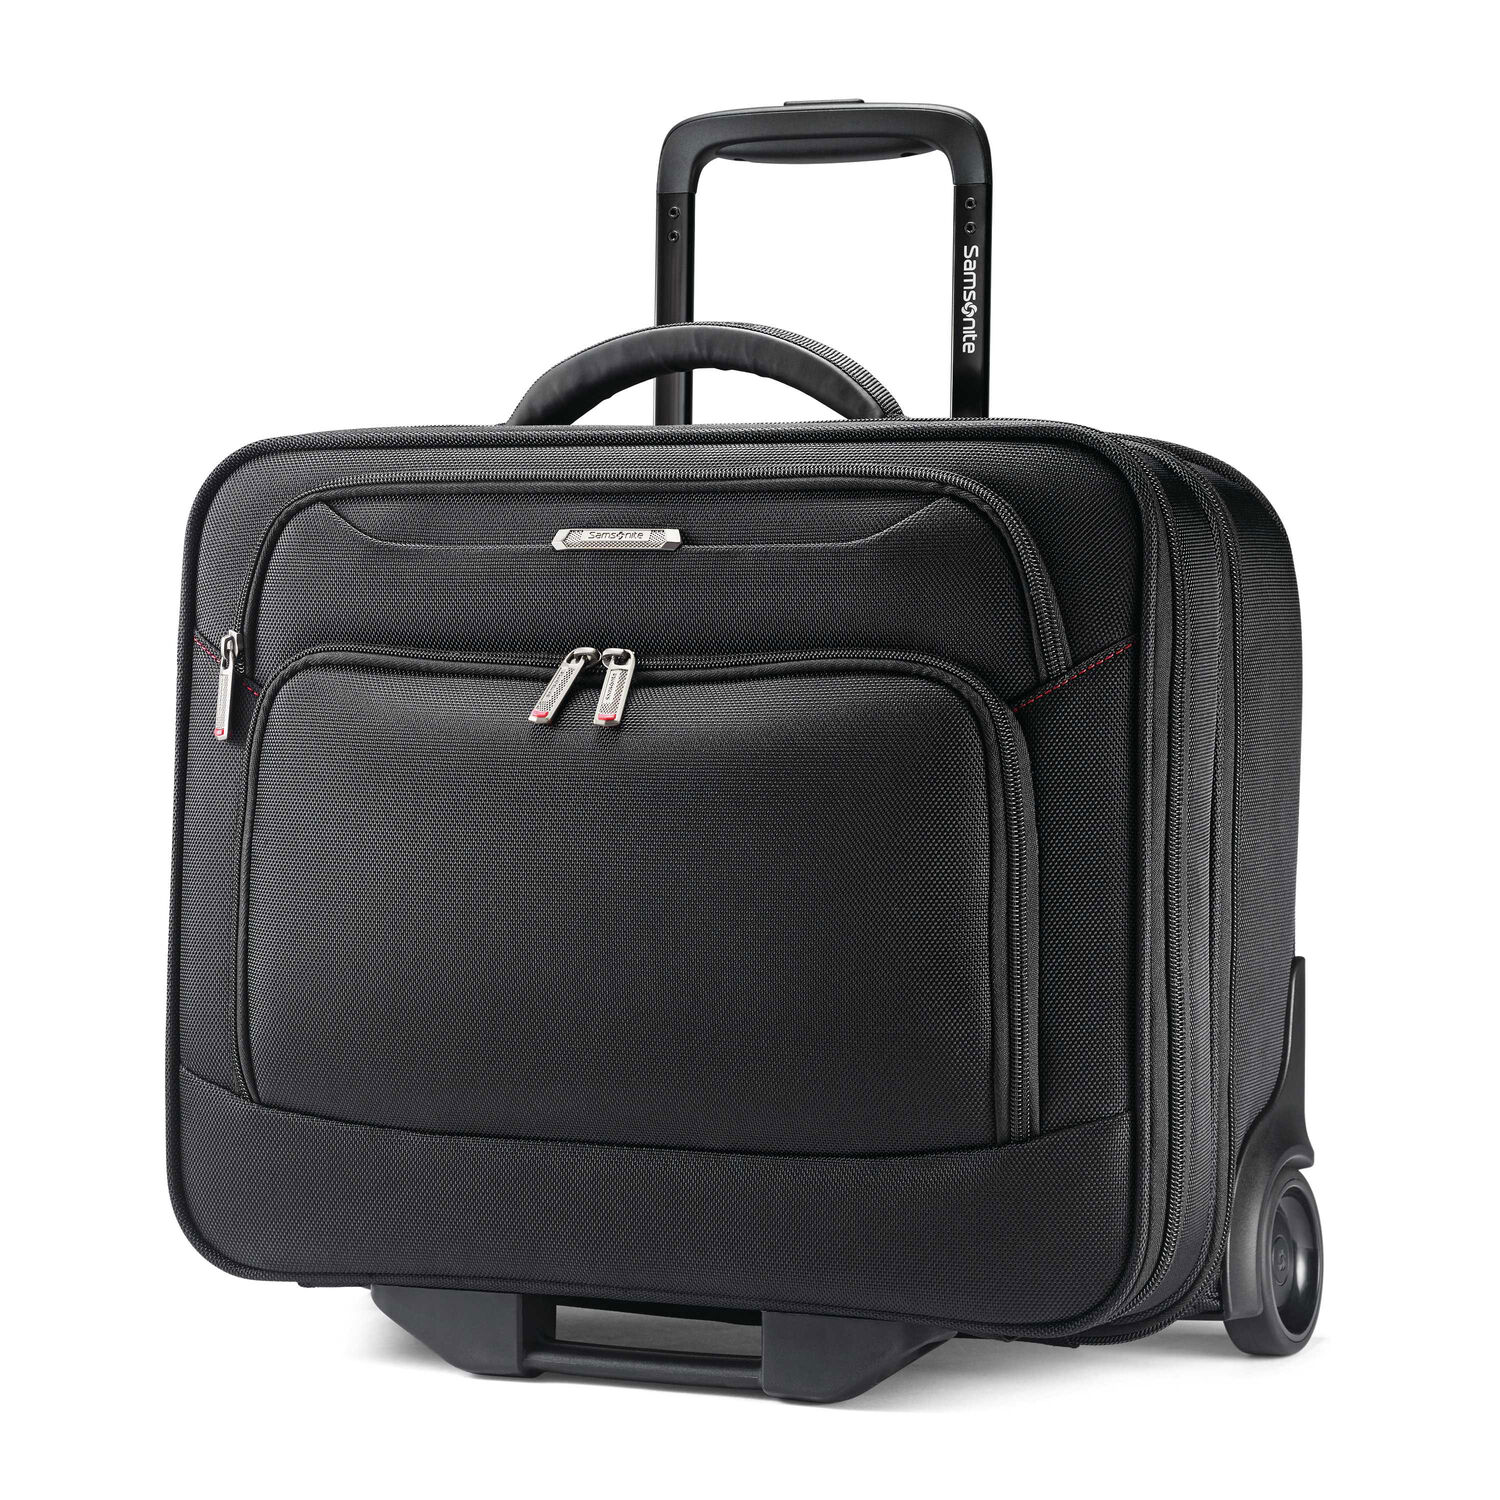 3b96adca3a Samsonite Xenon 3.0 Wheeled Mobile Office in the color Black.